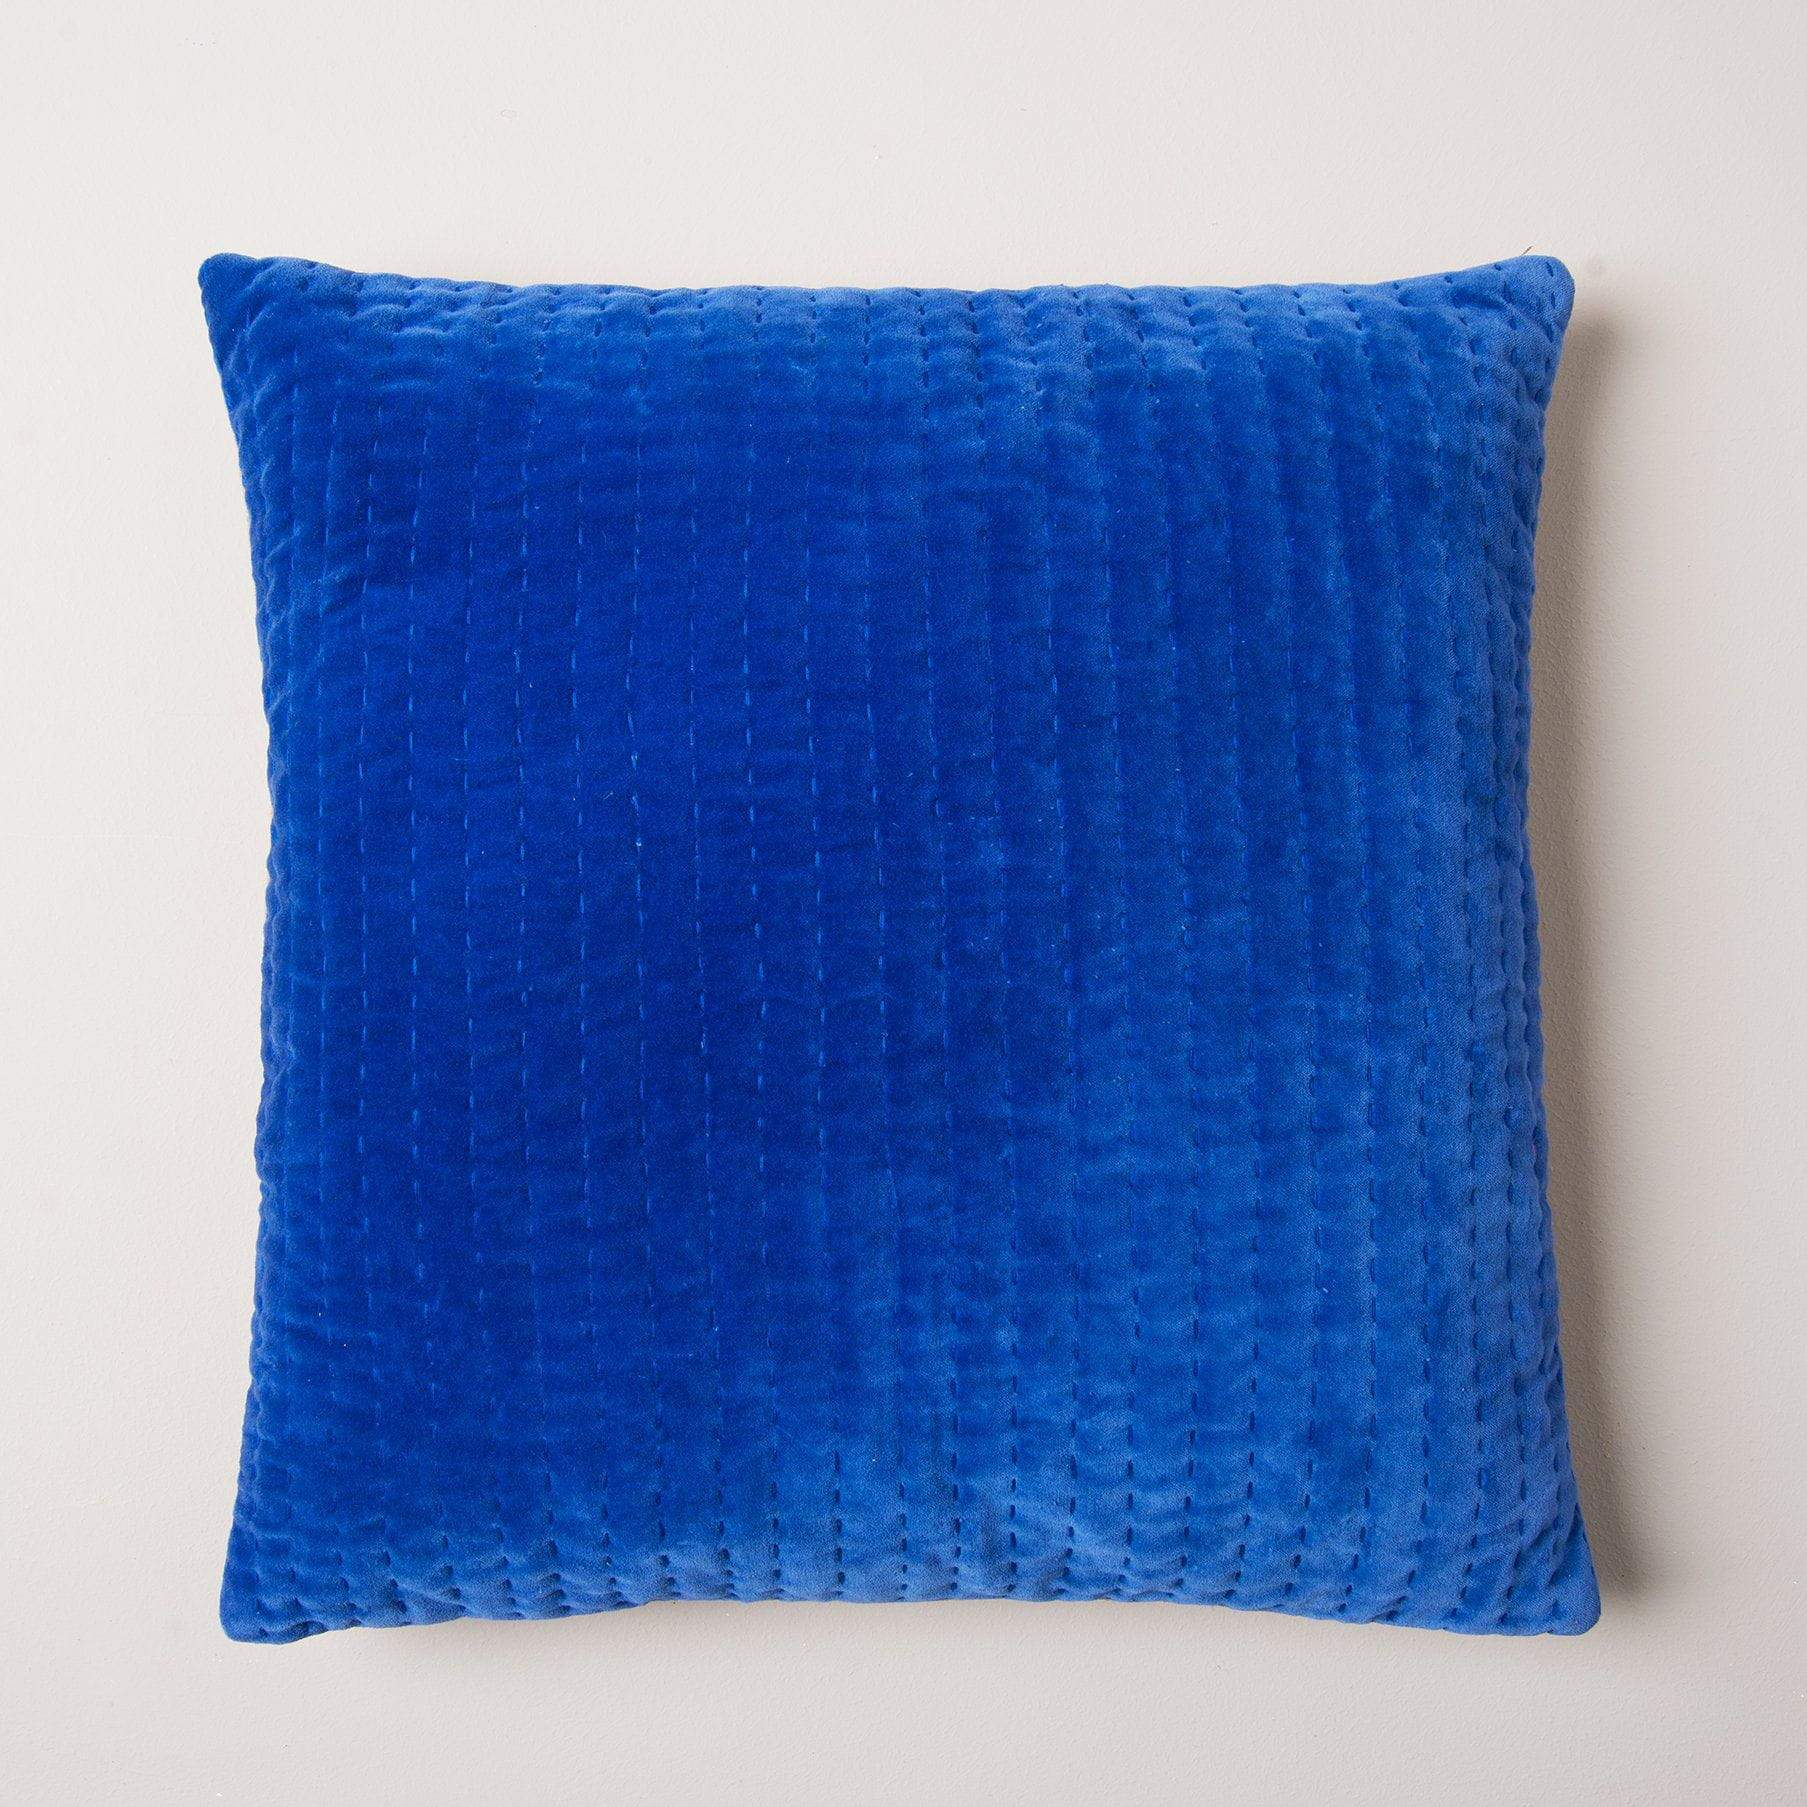 Ian Snow Ltd Velvet Cushion with Gudri Work in Mid Blue